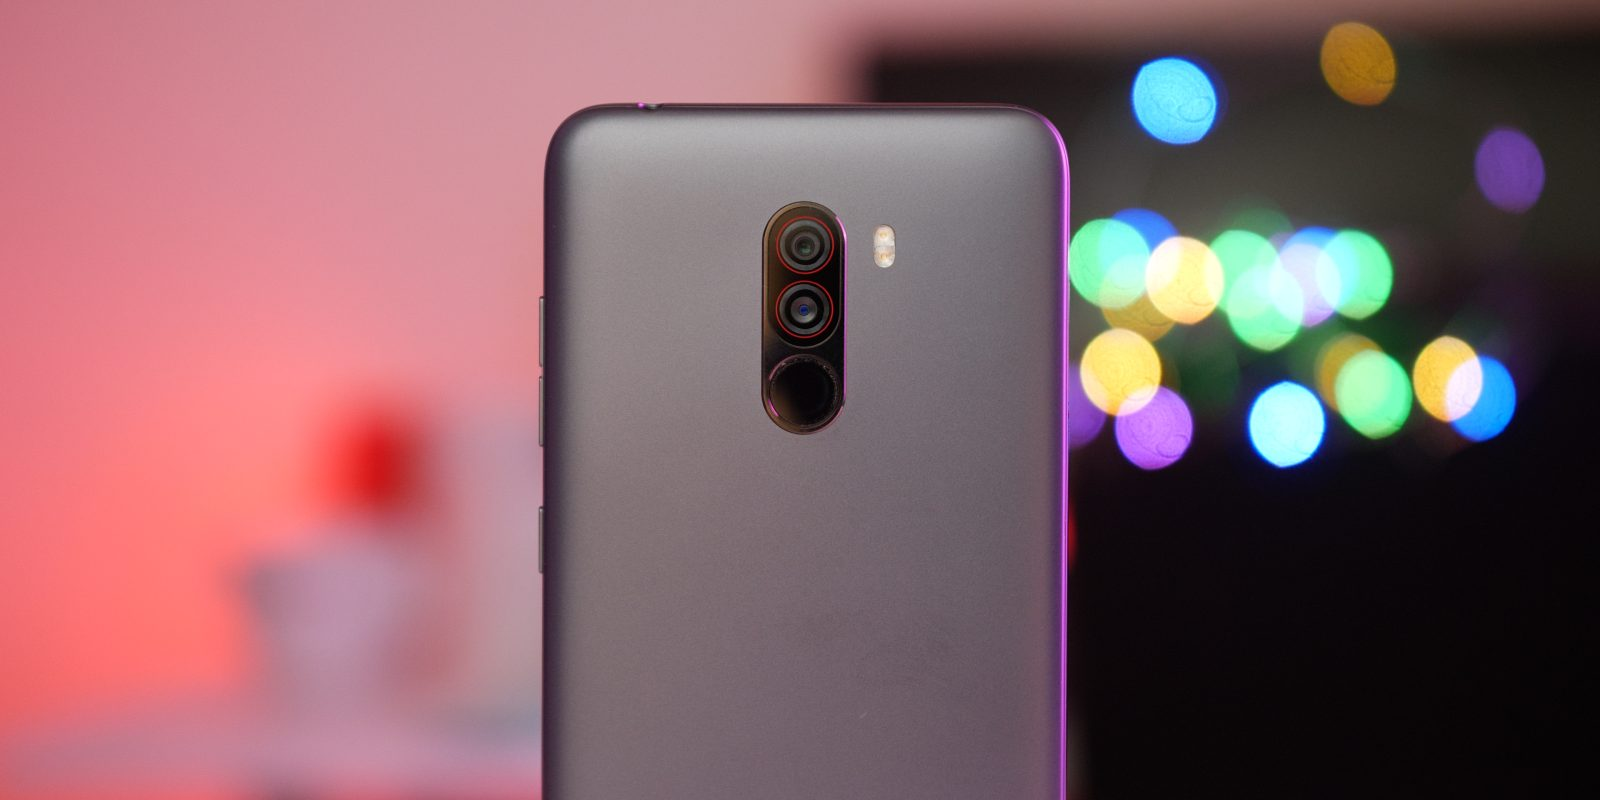 Pocophone F1 can now record 4K 60FPS via software beta